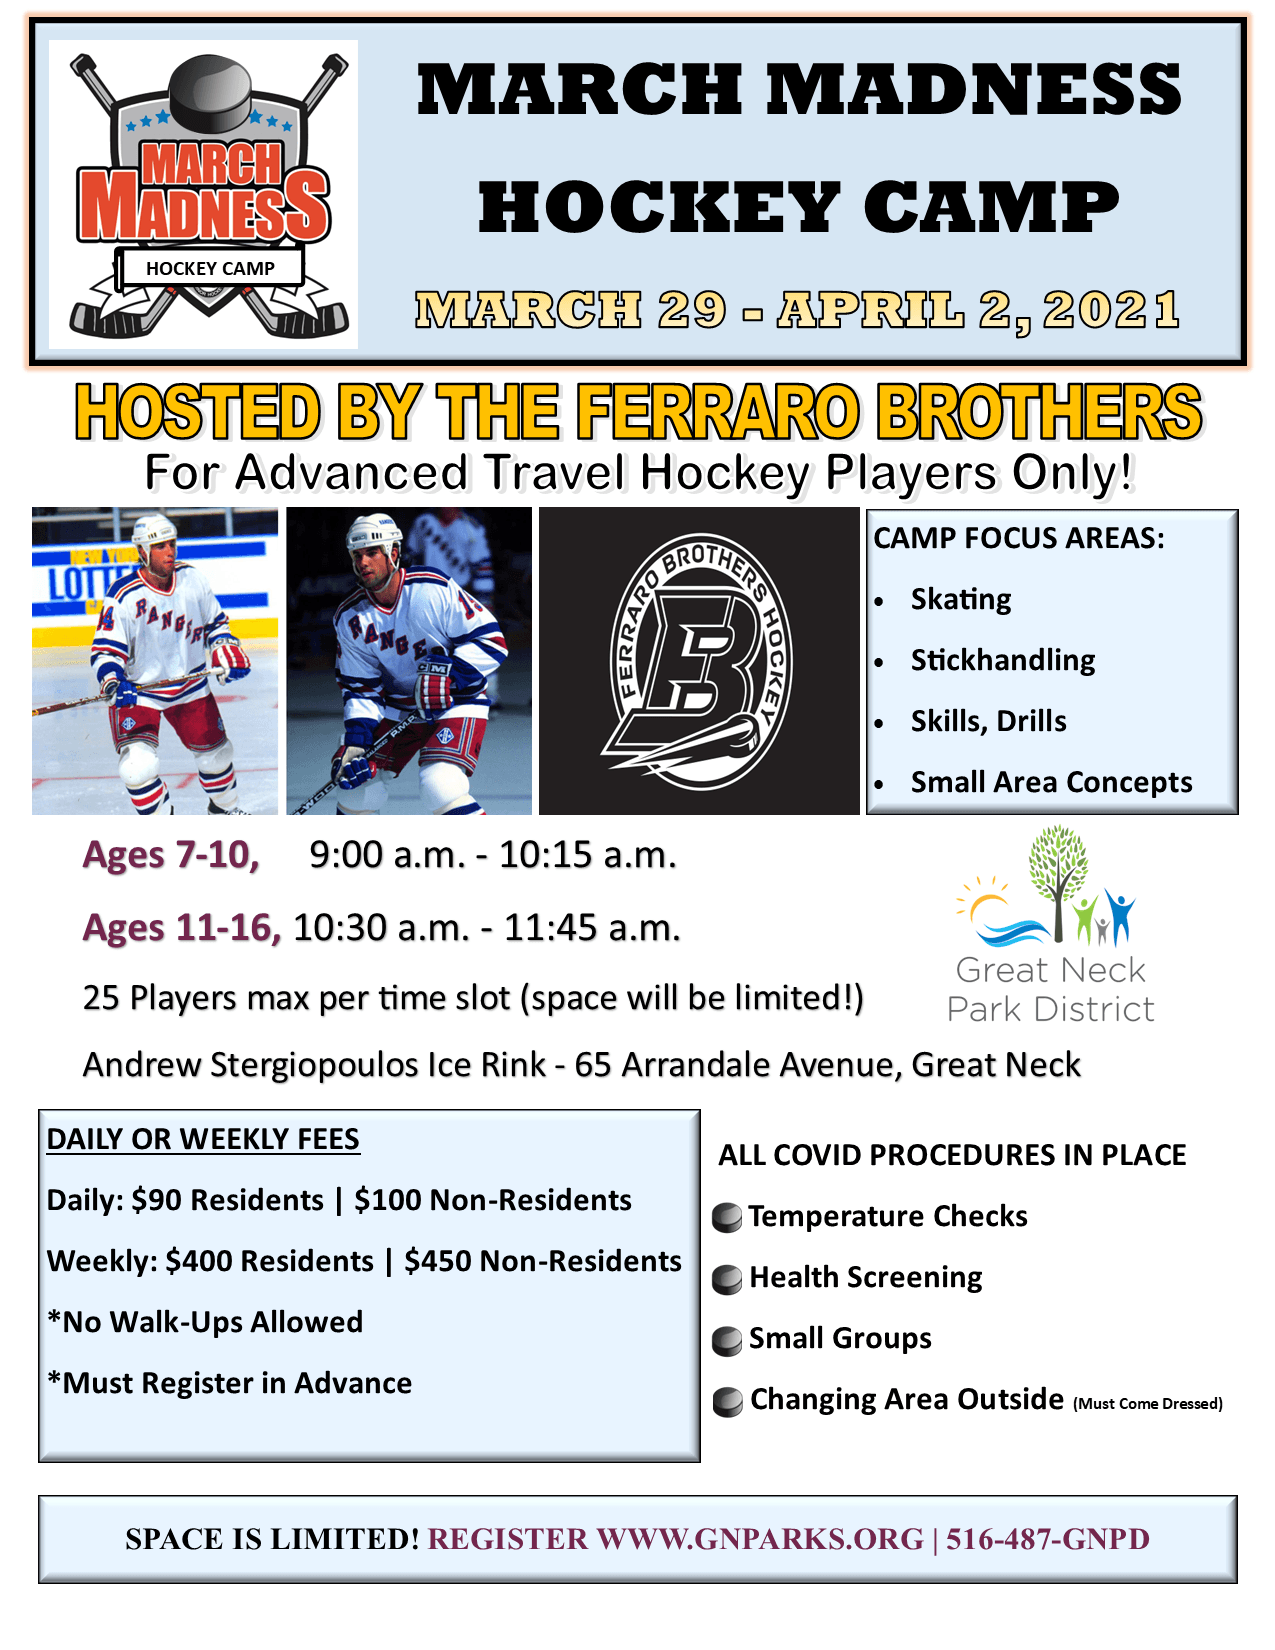 March Madness Hockey Camp - Ferraro Bros.